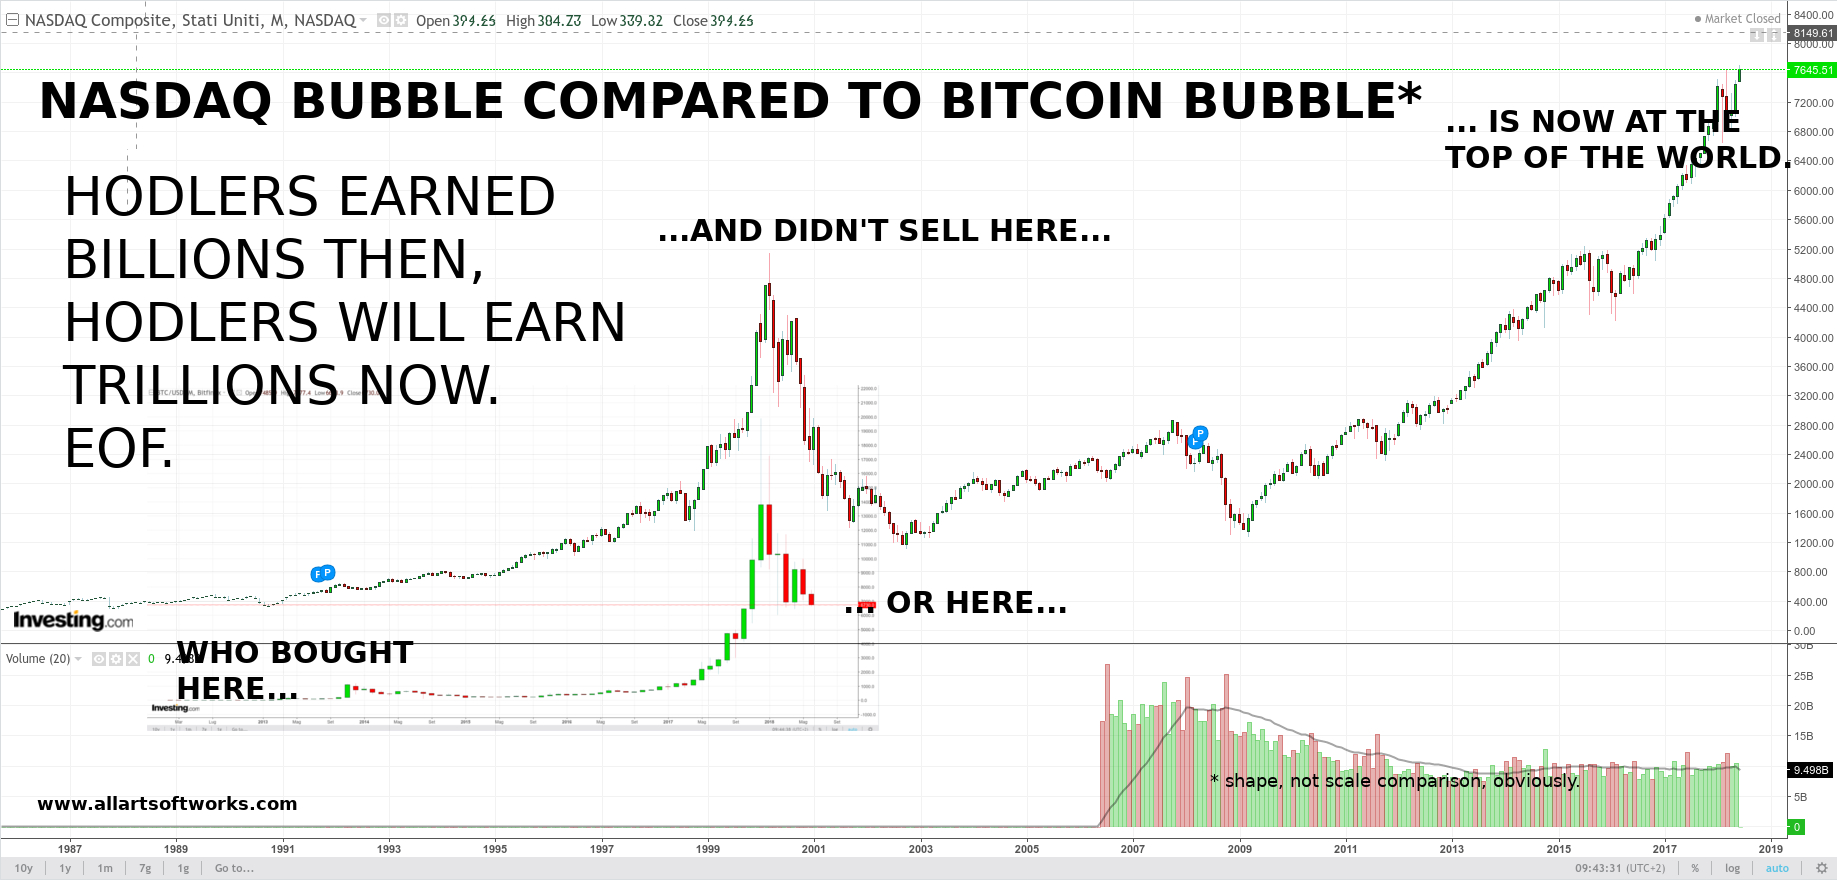 nasdaq bubble compared to bitcoin bubble allart softworks